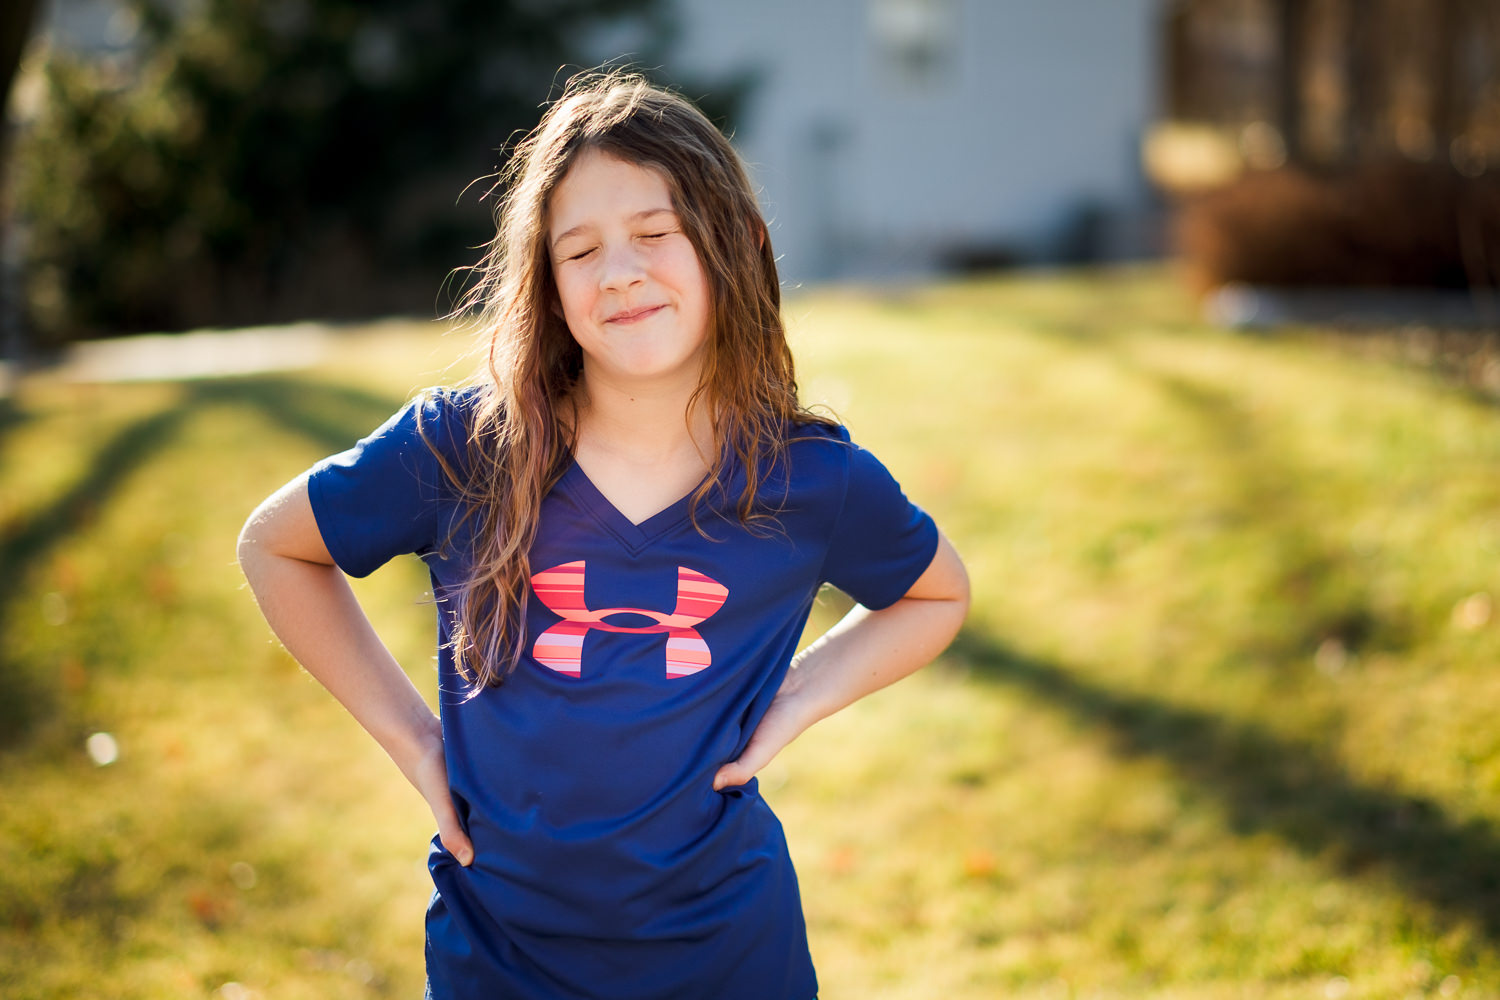 eight year old girl with long hair outdoors in Lincoln, Nebraska